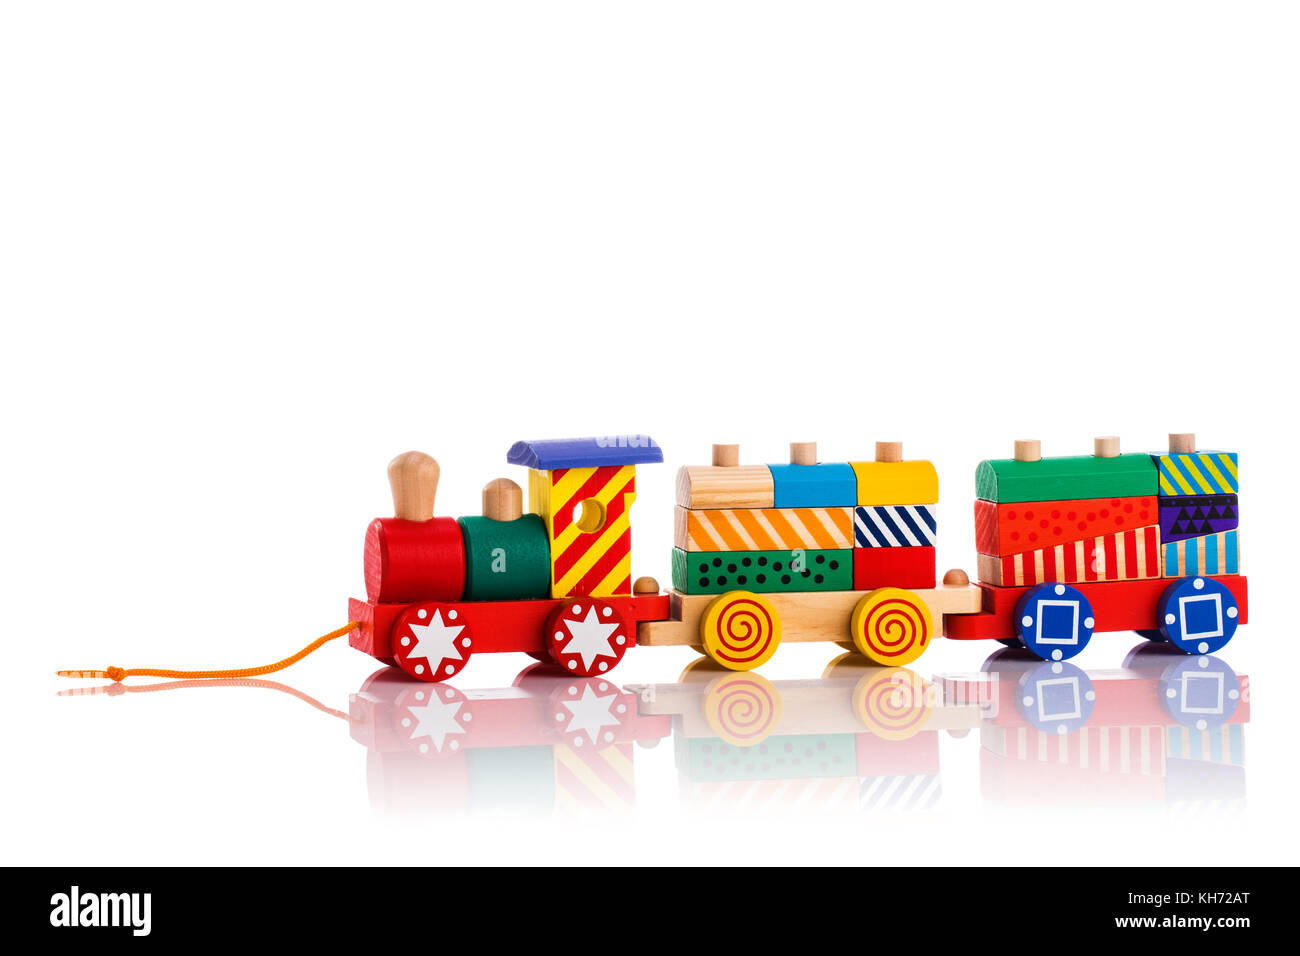 Wooden toy train with colorful blocks isolated over white background. Montessori educational toys. - Stock Image